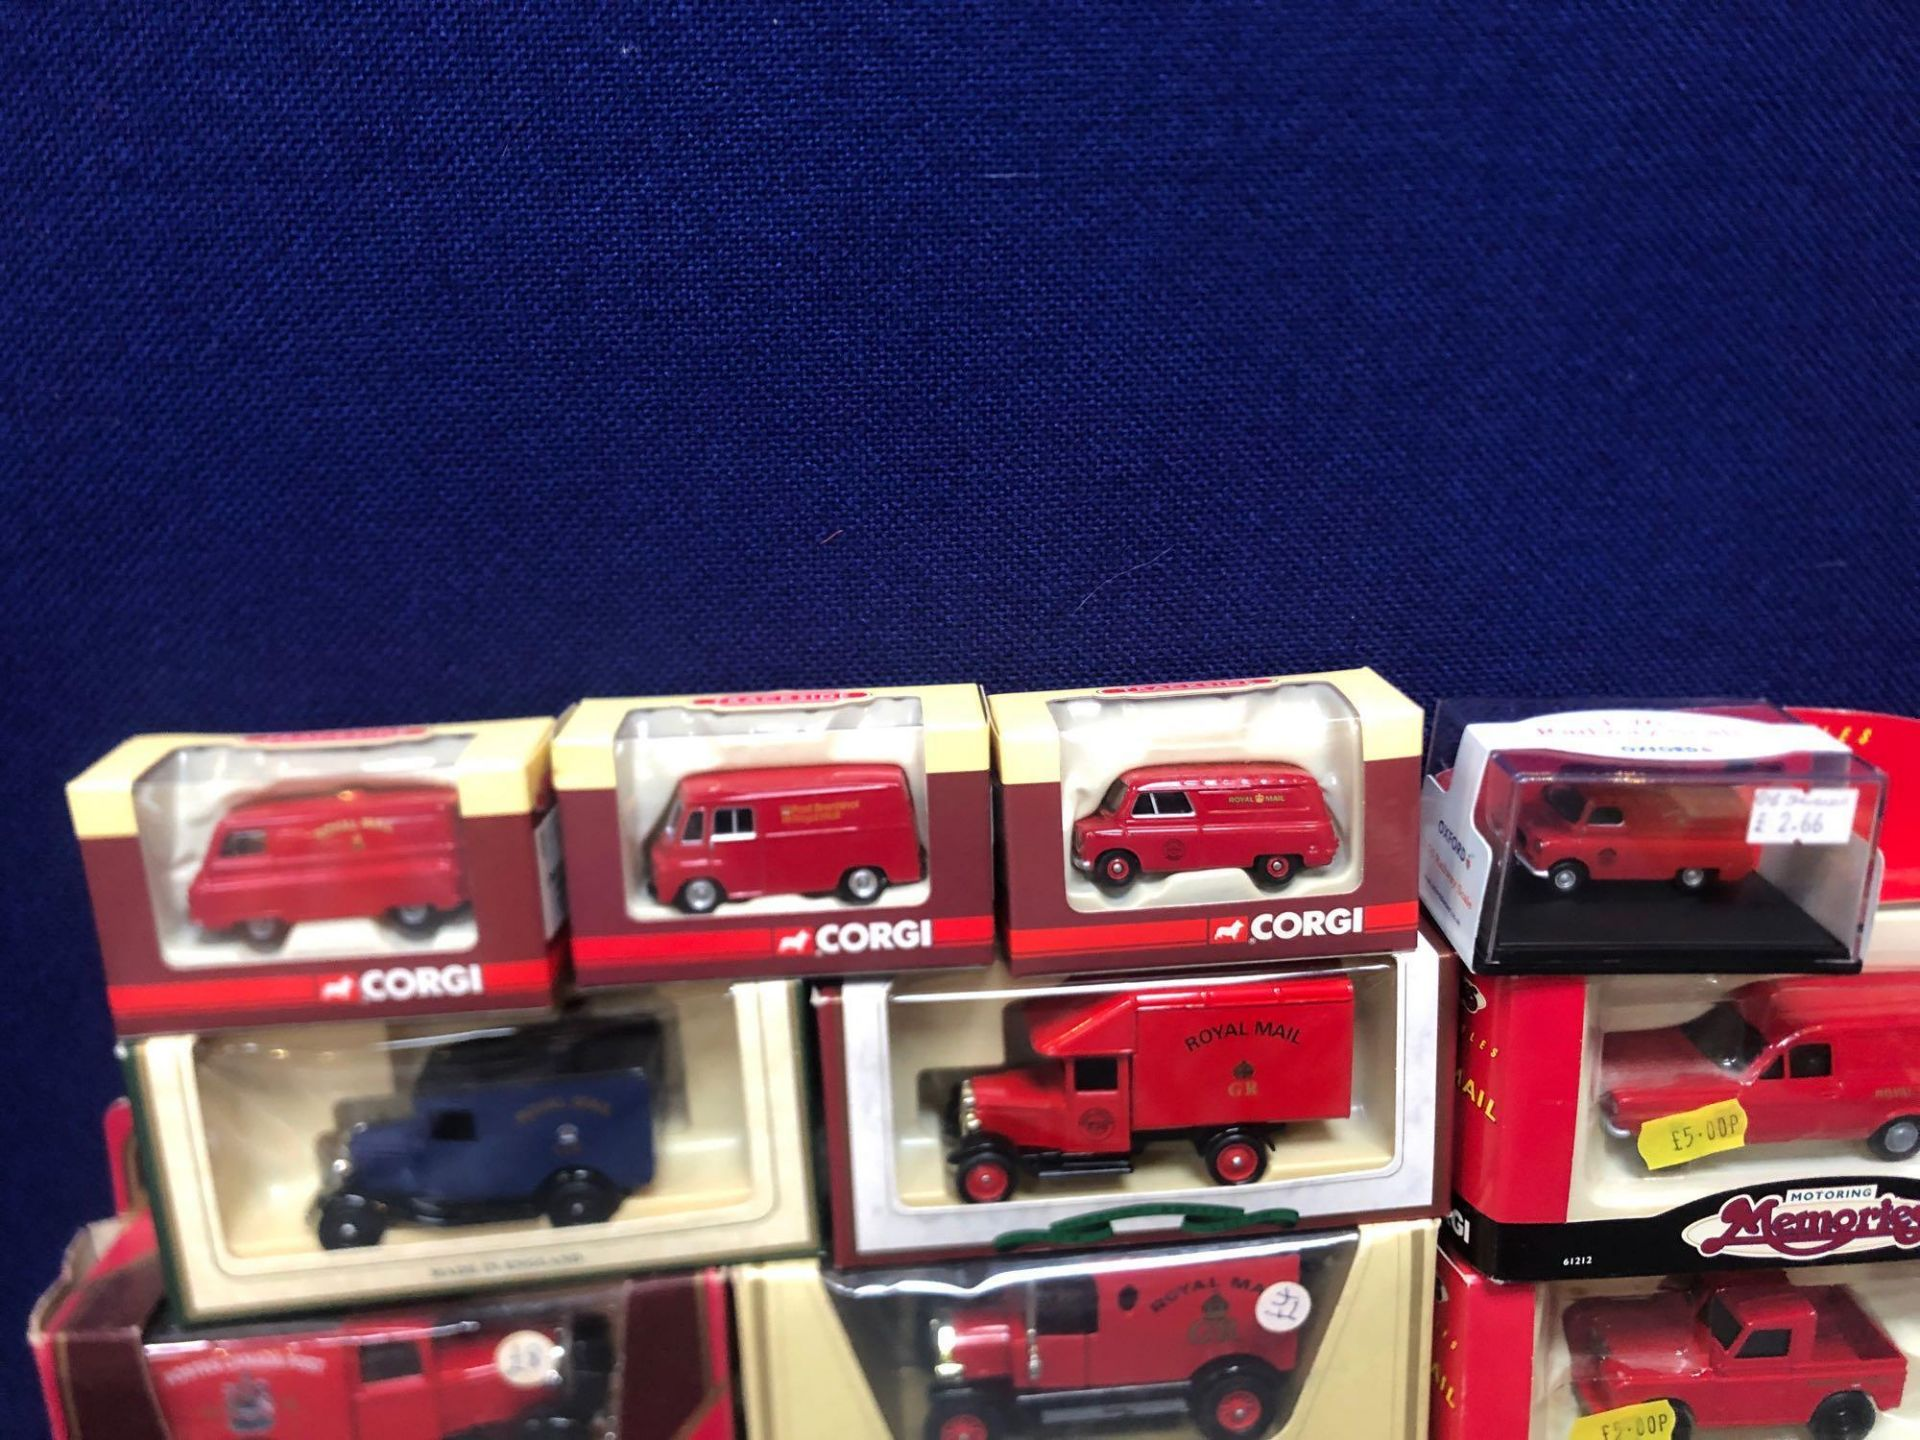 11x Diecast Individual Royal Mail Vehicles And 1x Set All In Boxes - Image 4 of 4